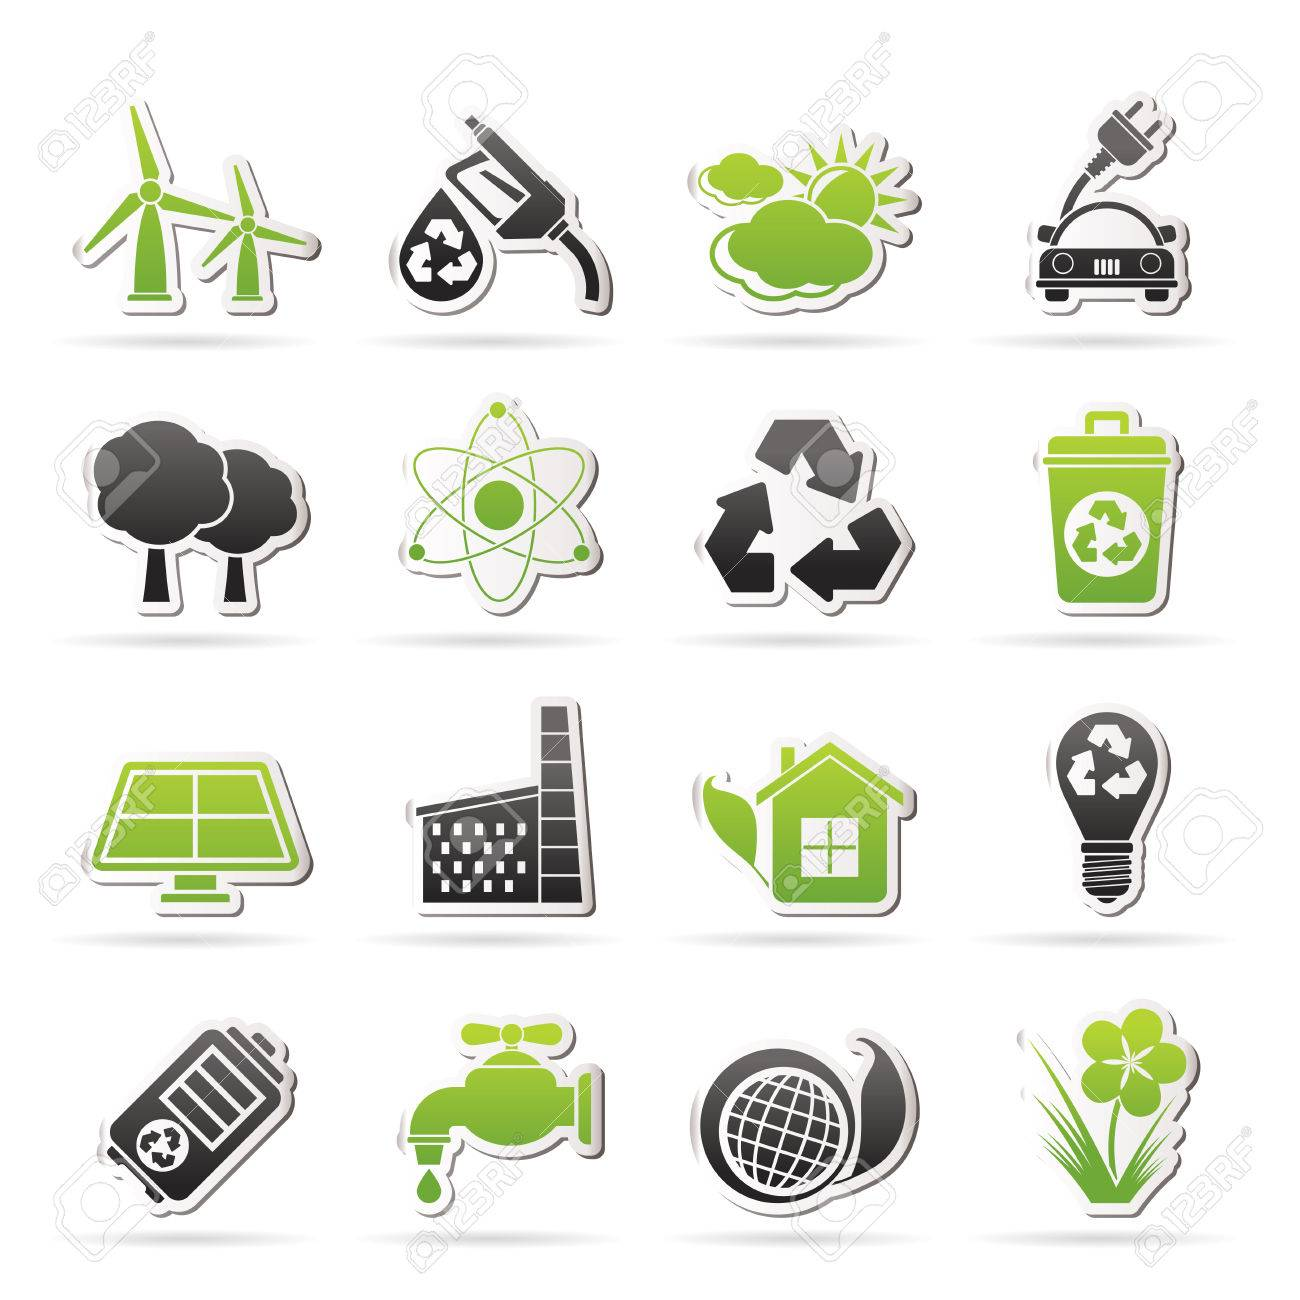 Ecology, environment and recycling icons - vector icon set - 25817080